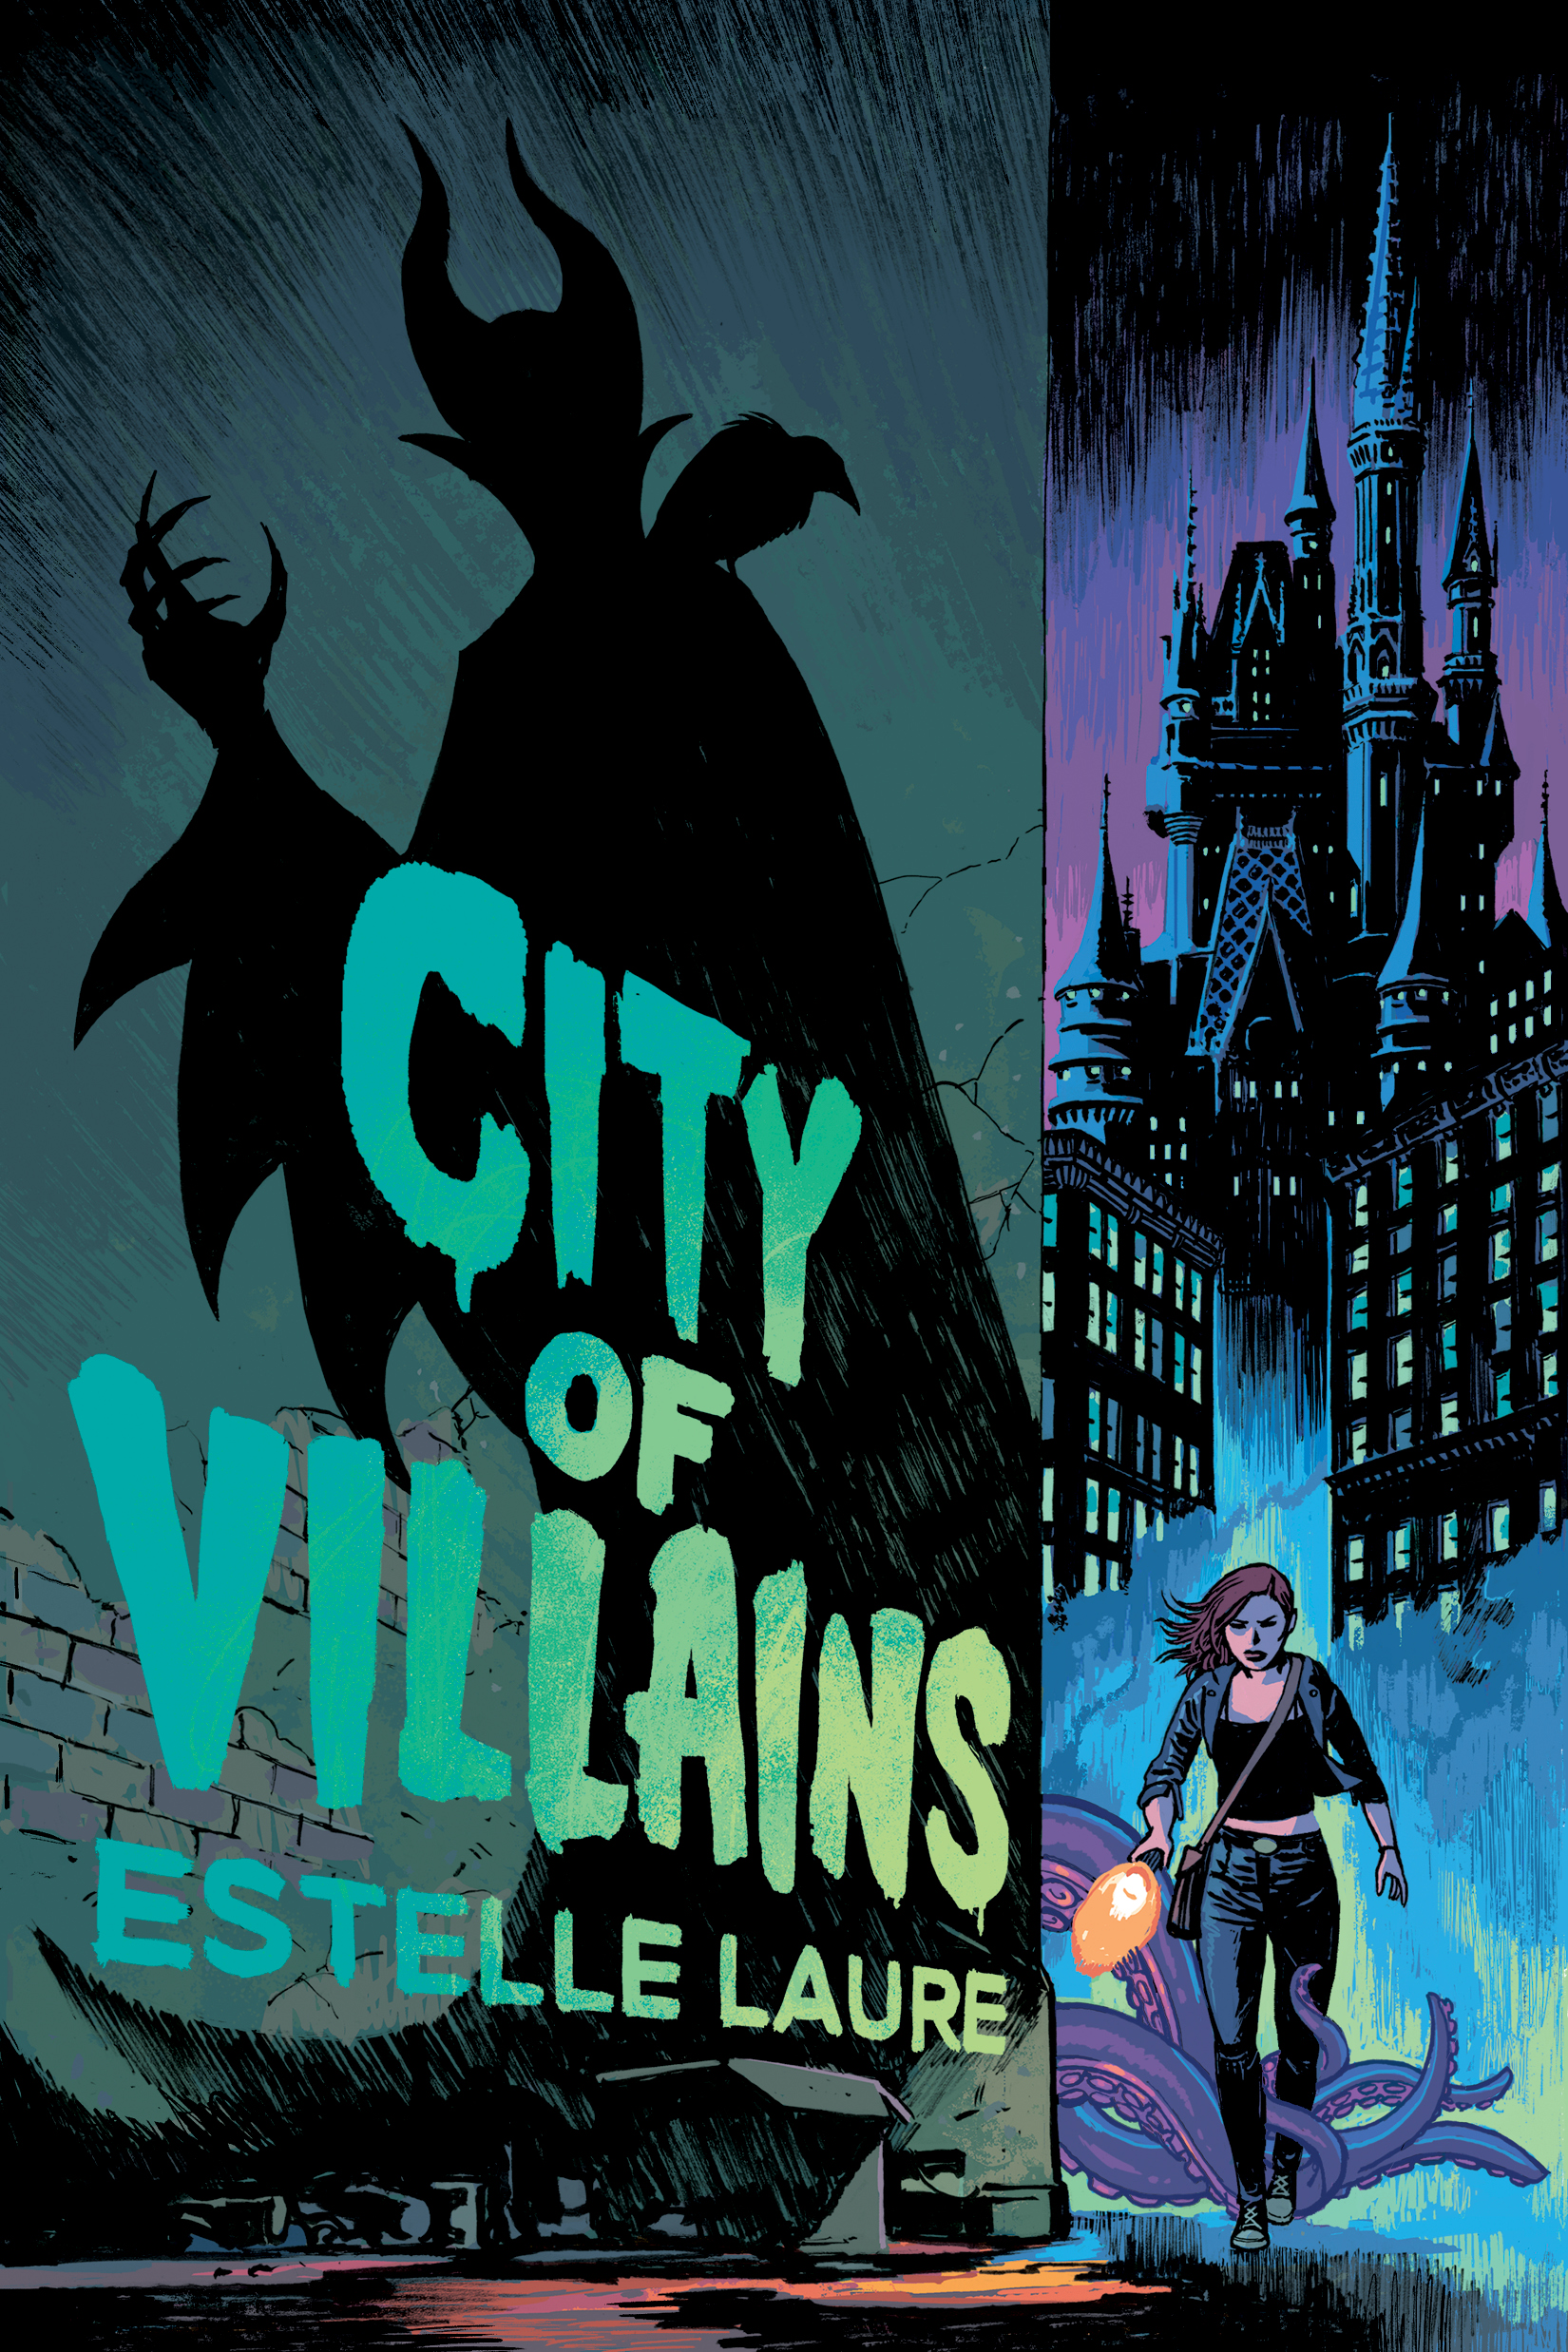 City of Villains Book 1 (Volume 1)